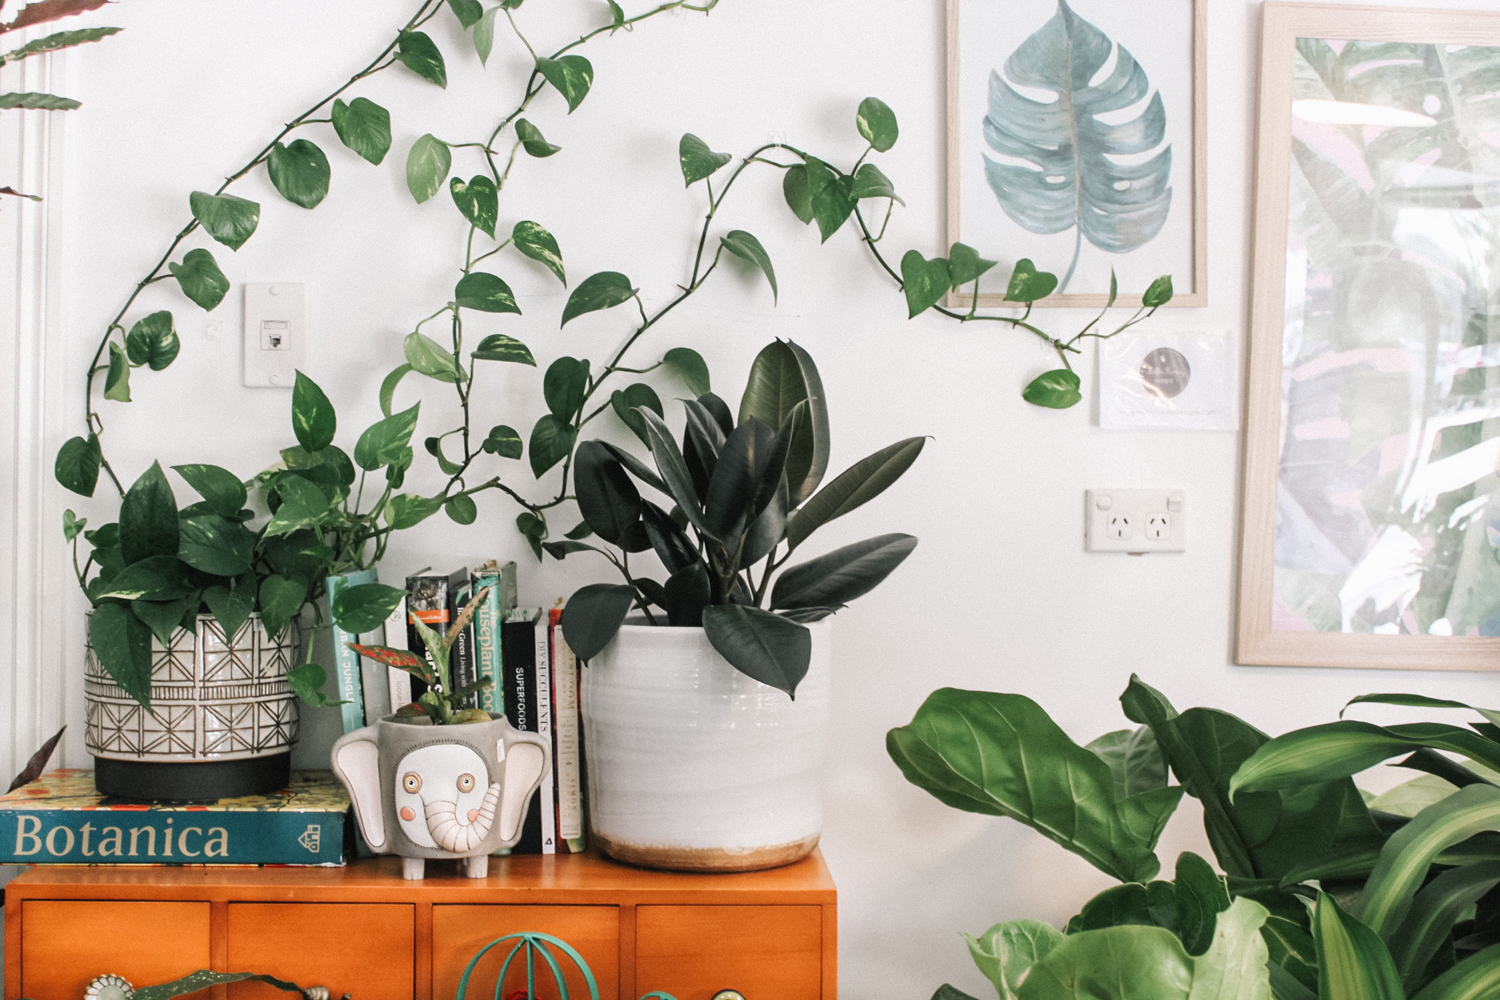 A beginner's guide to growing indoor and house plants